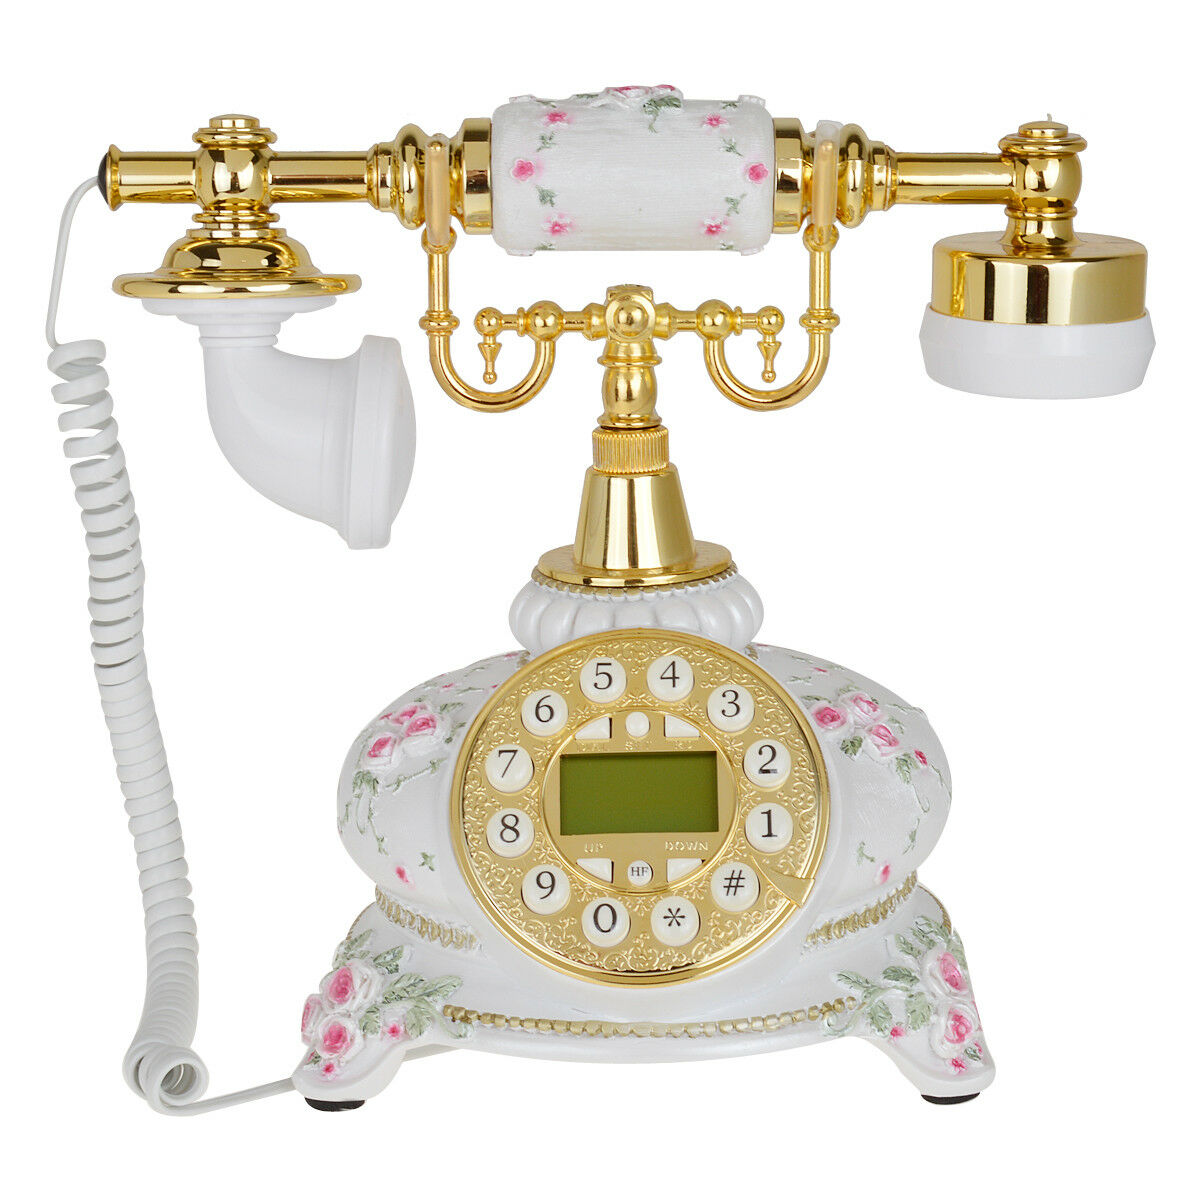 White Flower Retro Push Button Vintage Antique Telephone Dial Desk Phone 1  of 5Only 4 available See More - WHITE FLOWER RETRO Push Button Vintage Antique Telephone Dial Desk